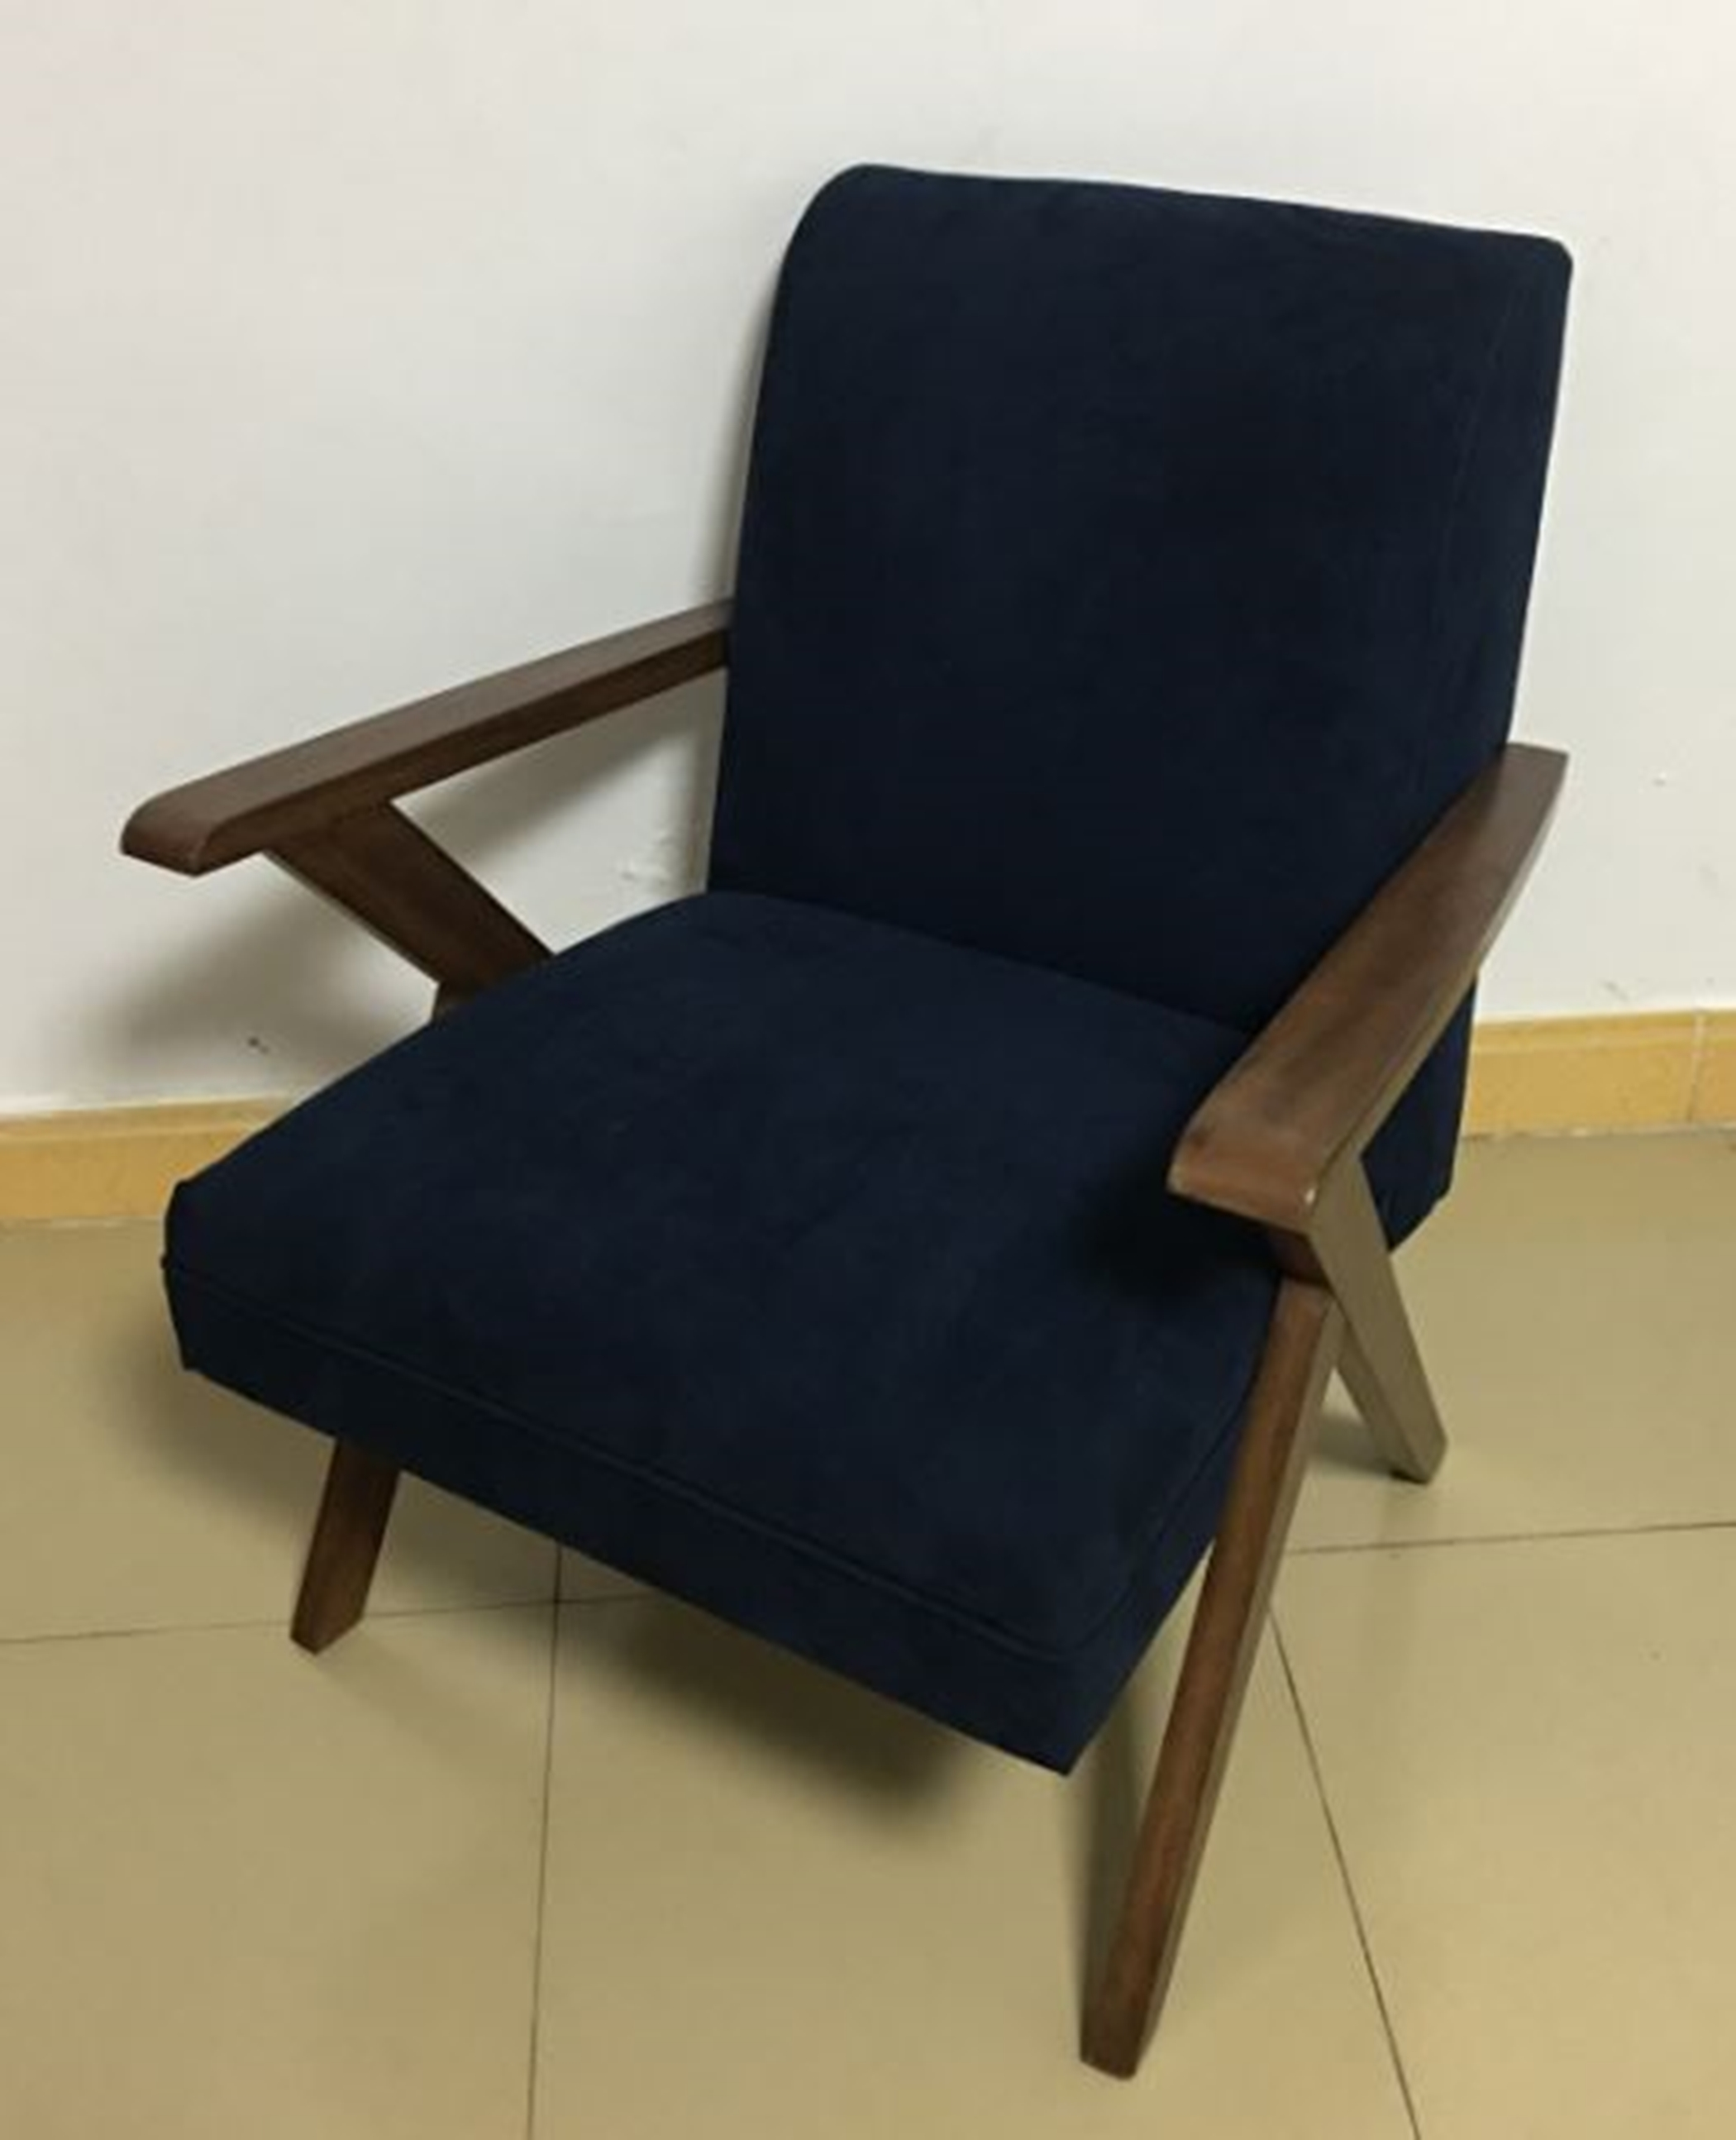 905415 - Accent Chair